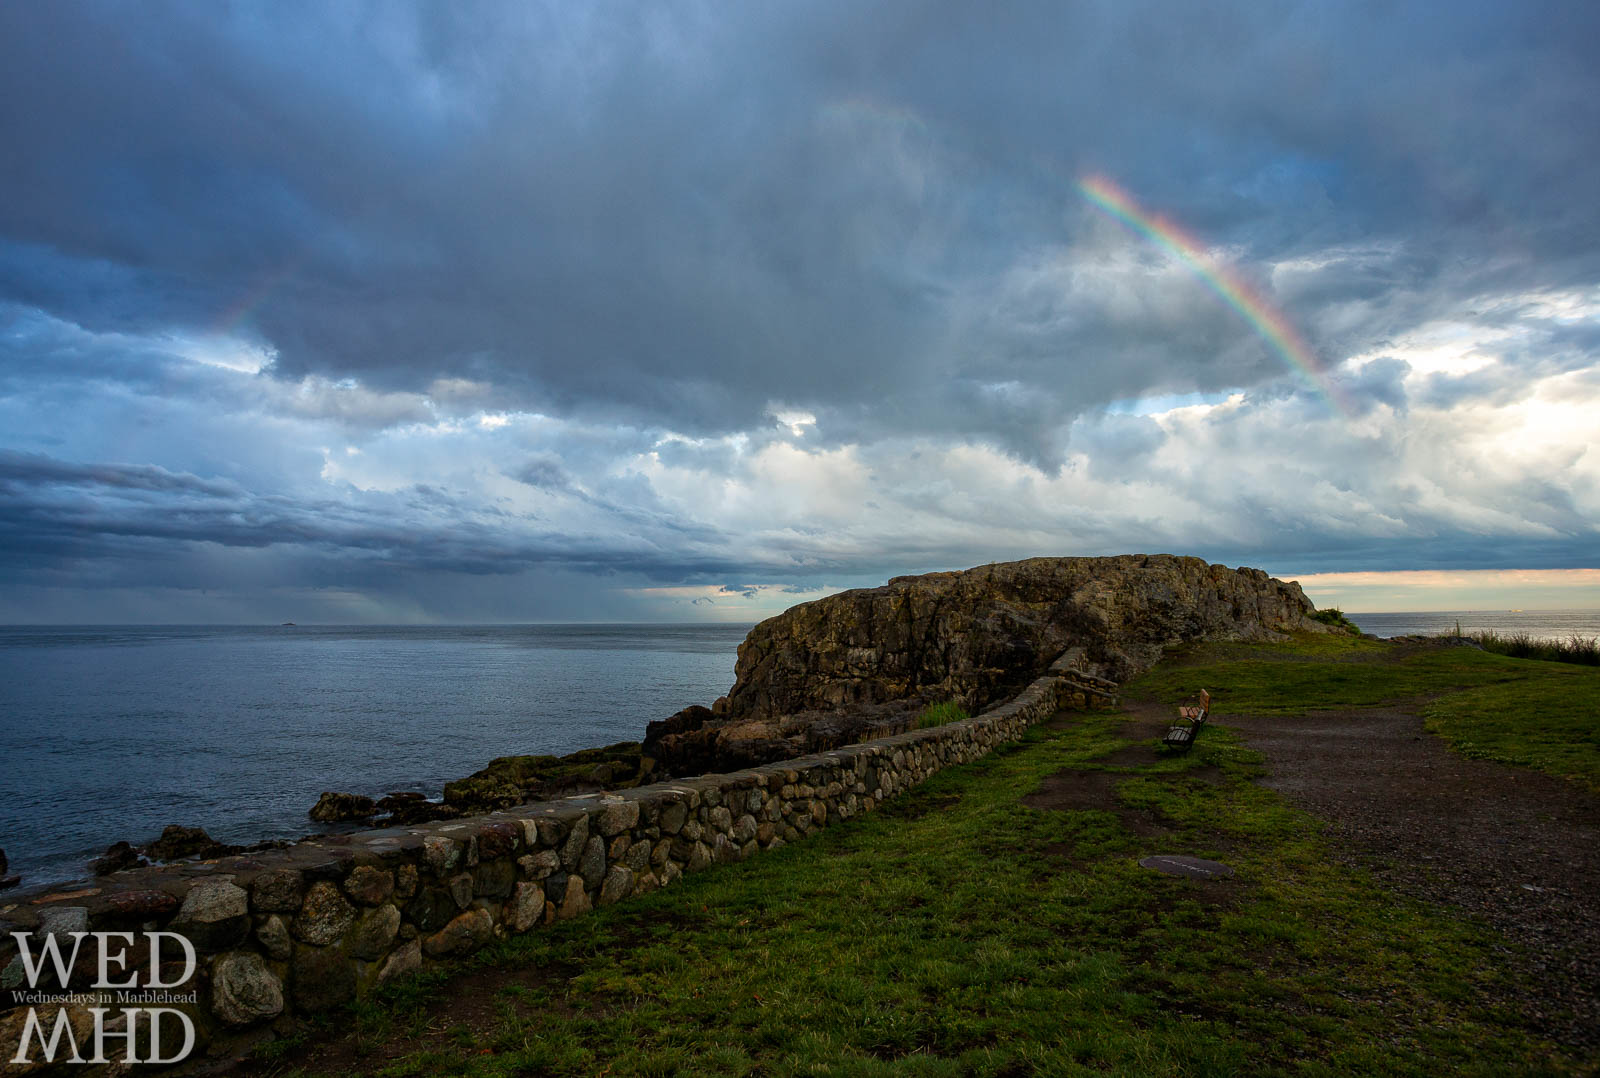 A rainbow forms over Castle Rock between storms on a late June day in Marblehead